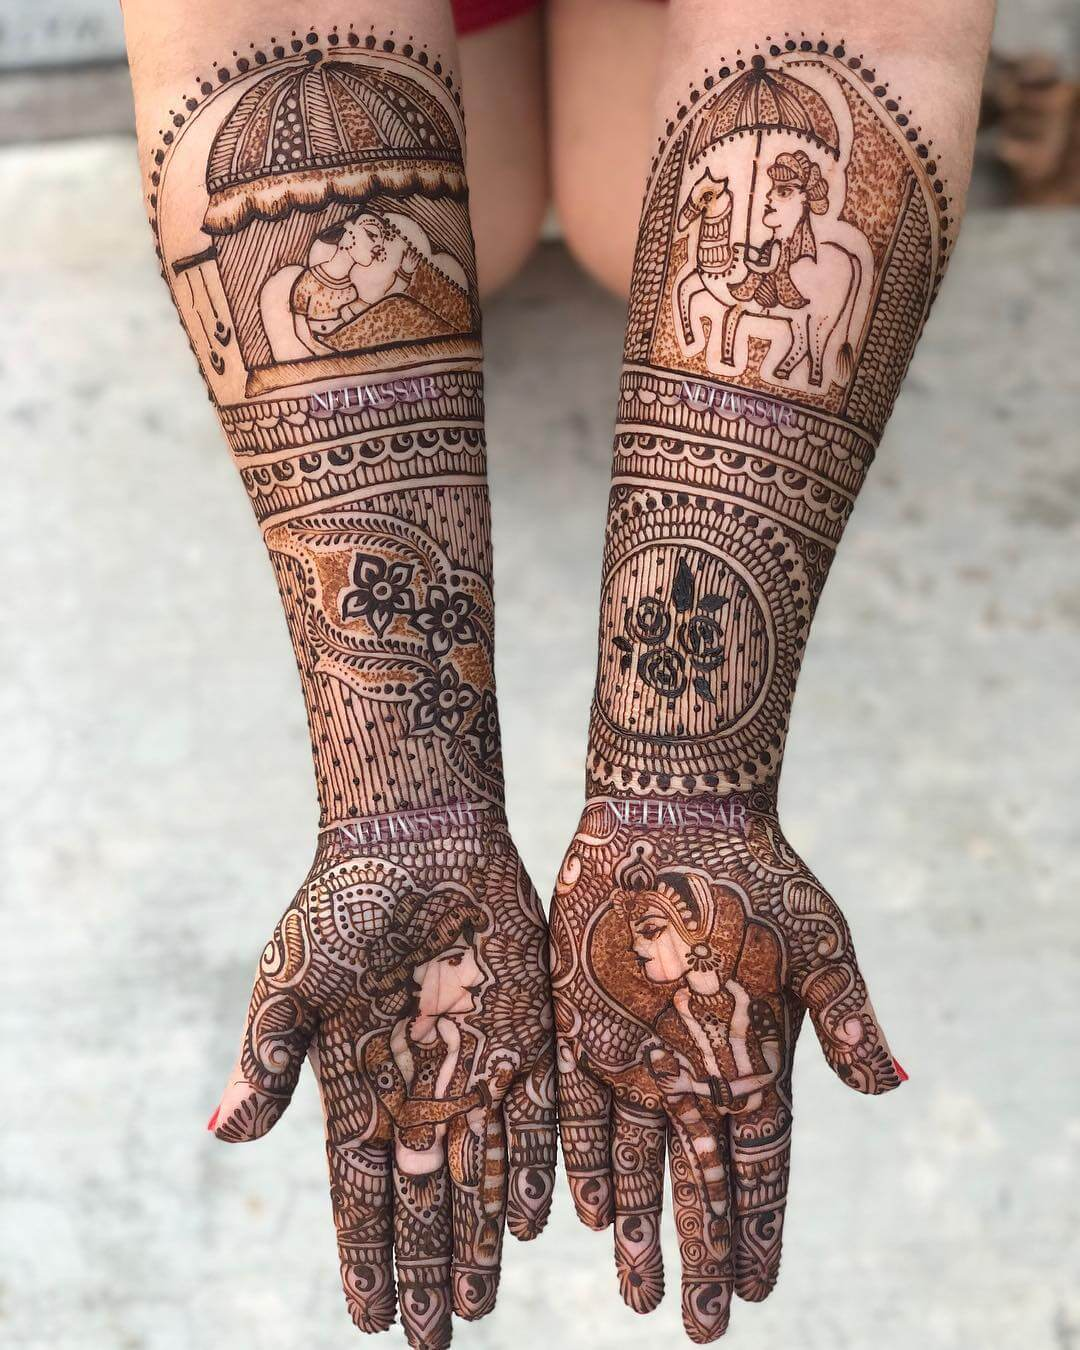 50+ New Bridal Mehndi Designs 2019 - Top Mehandi Design Trends For The Year 1